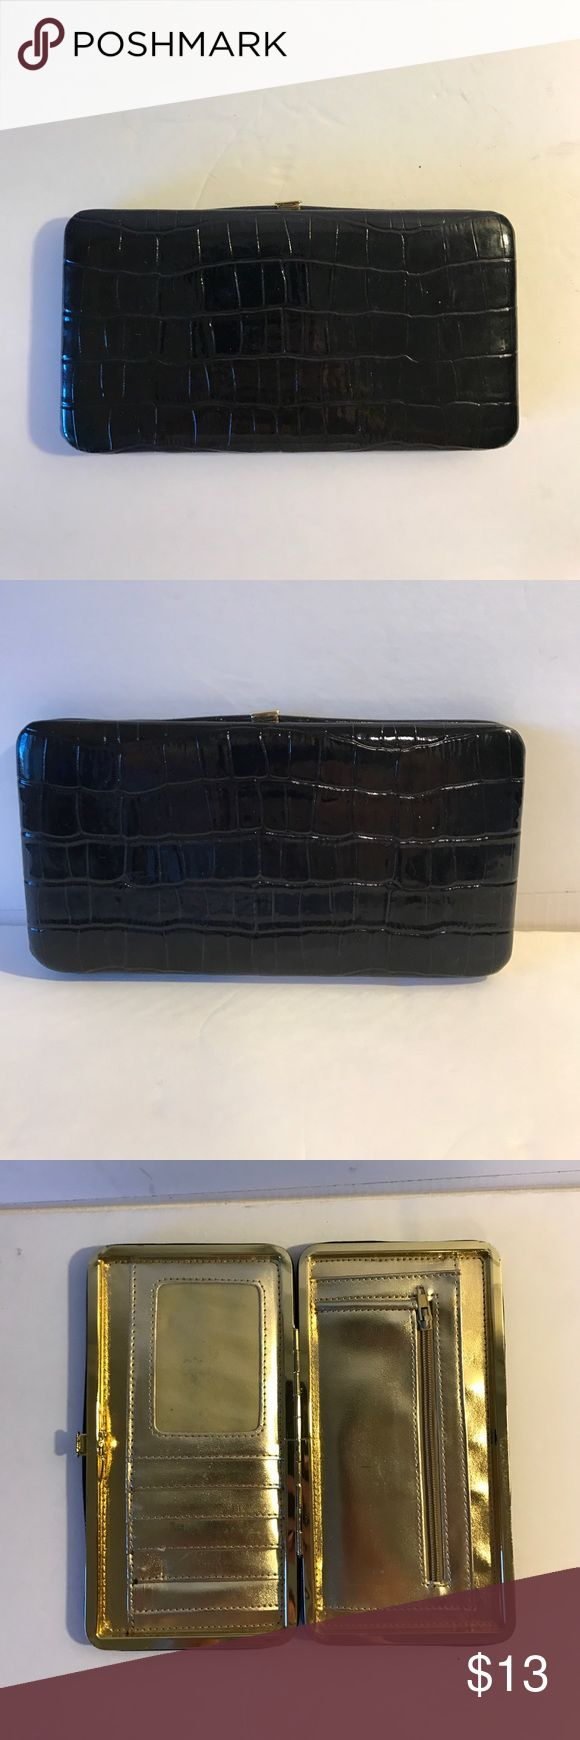 Super cute black patent leather wallet! Black patent leather wallet with gold metallic inside! Very cute!!! 7 inches long width is 3 3/4. Bags Wallets